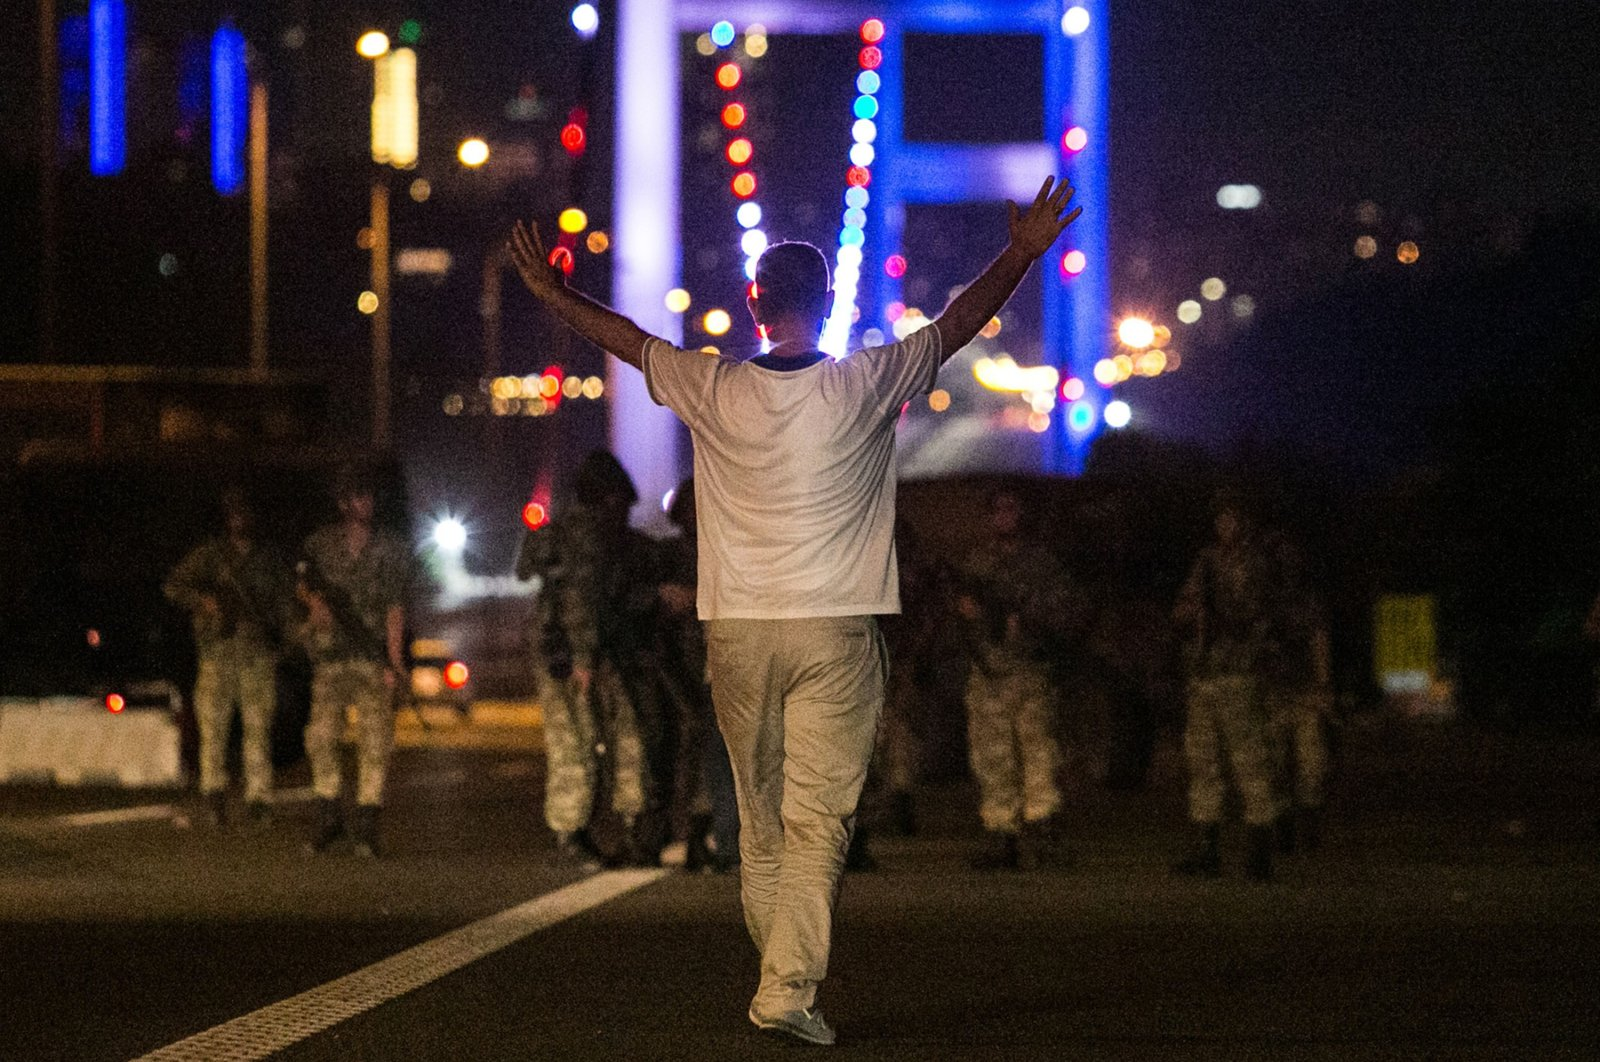 A man confronts putschist troops at the Bosporus Bridge, in Istanbul, Turkey, July 16, 2016. (AFP PHOTO)